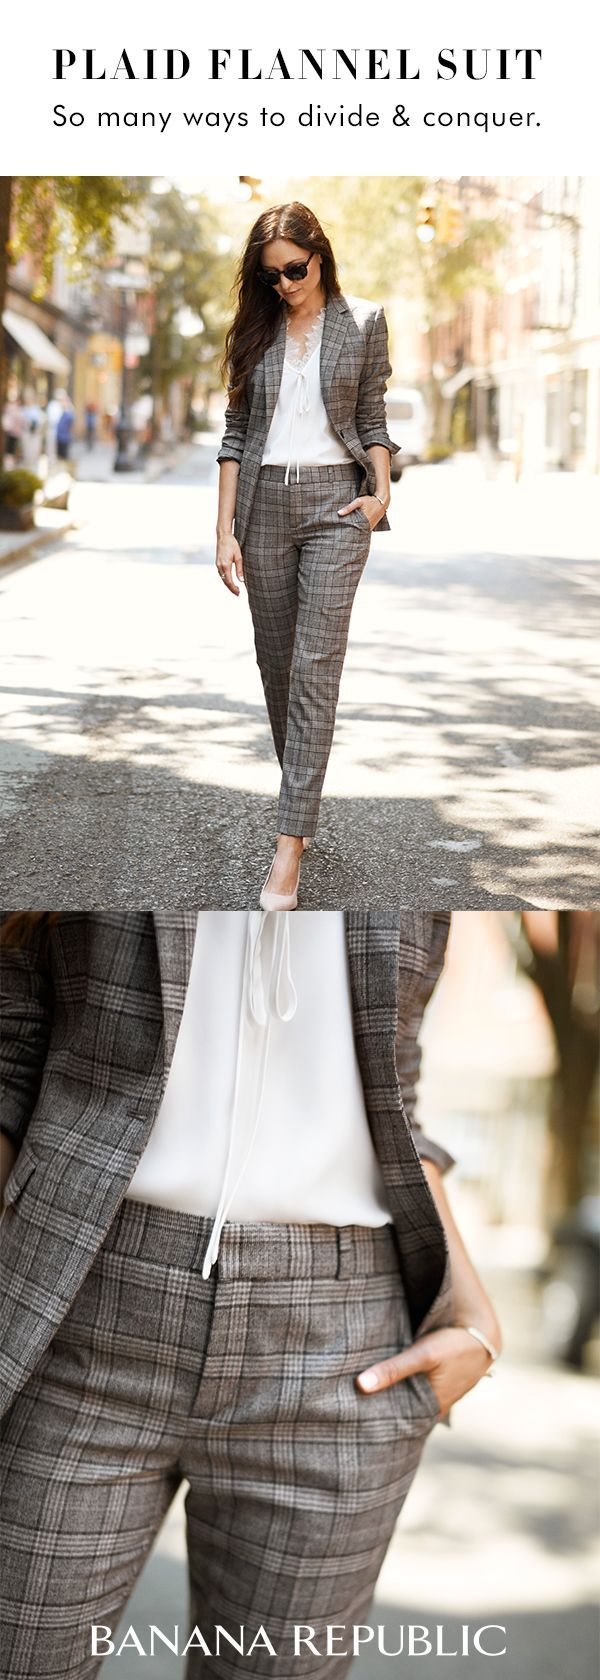 Make an entrance in our classic pant suit silhouette in a chic plaid flannel finish. Wear it together or as separates you definitely can not go wrong | Banana Republic